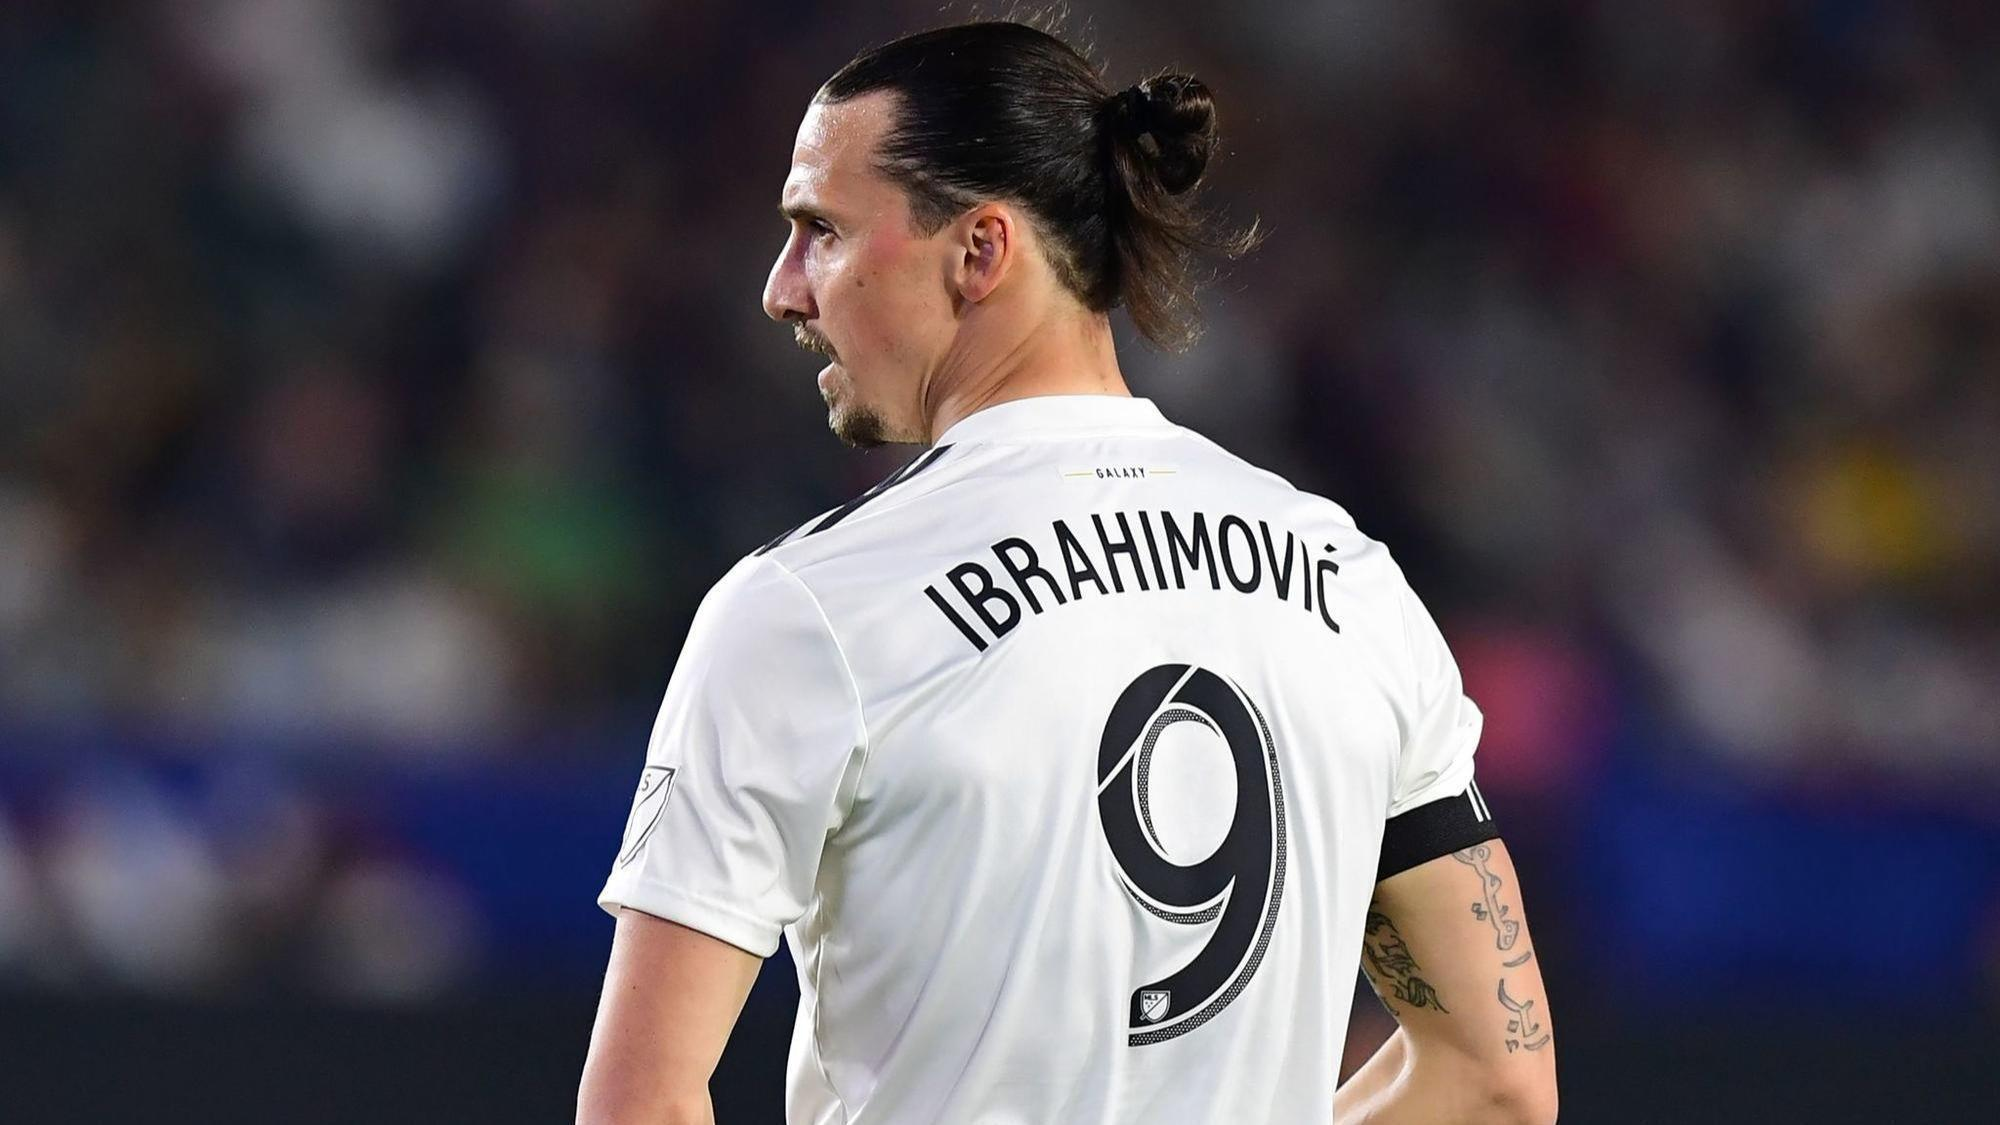 Zlatan Ibrahimovic doesn't agree that Sweden's World Cup team is better off without him